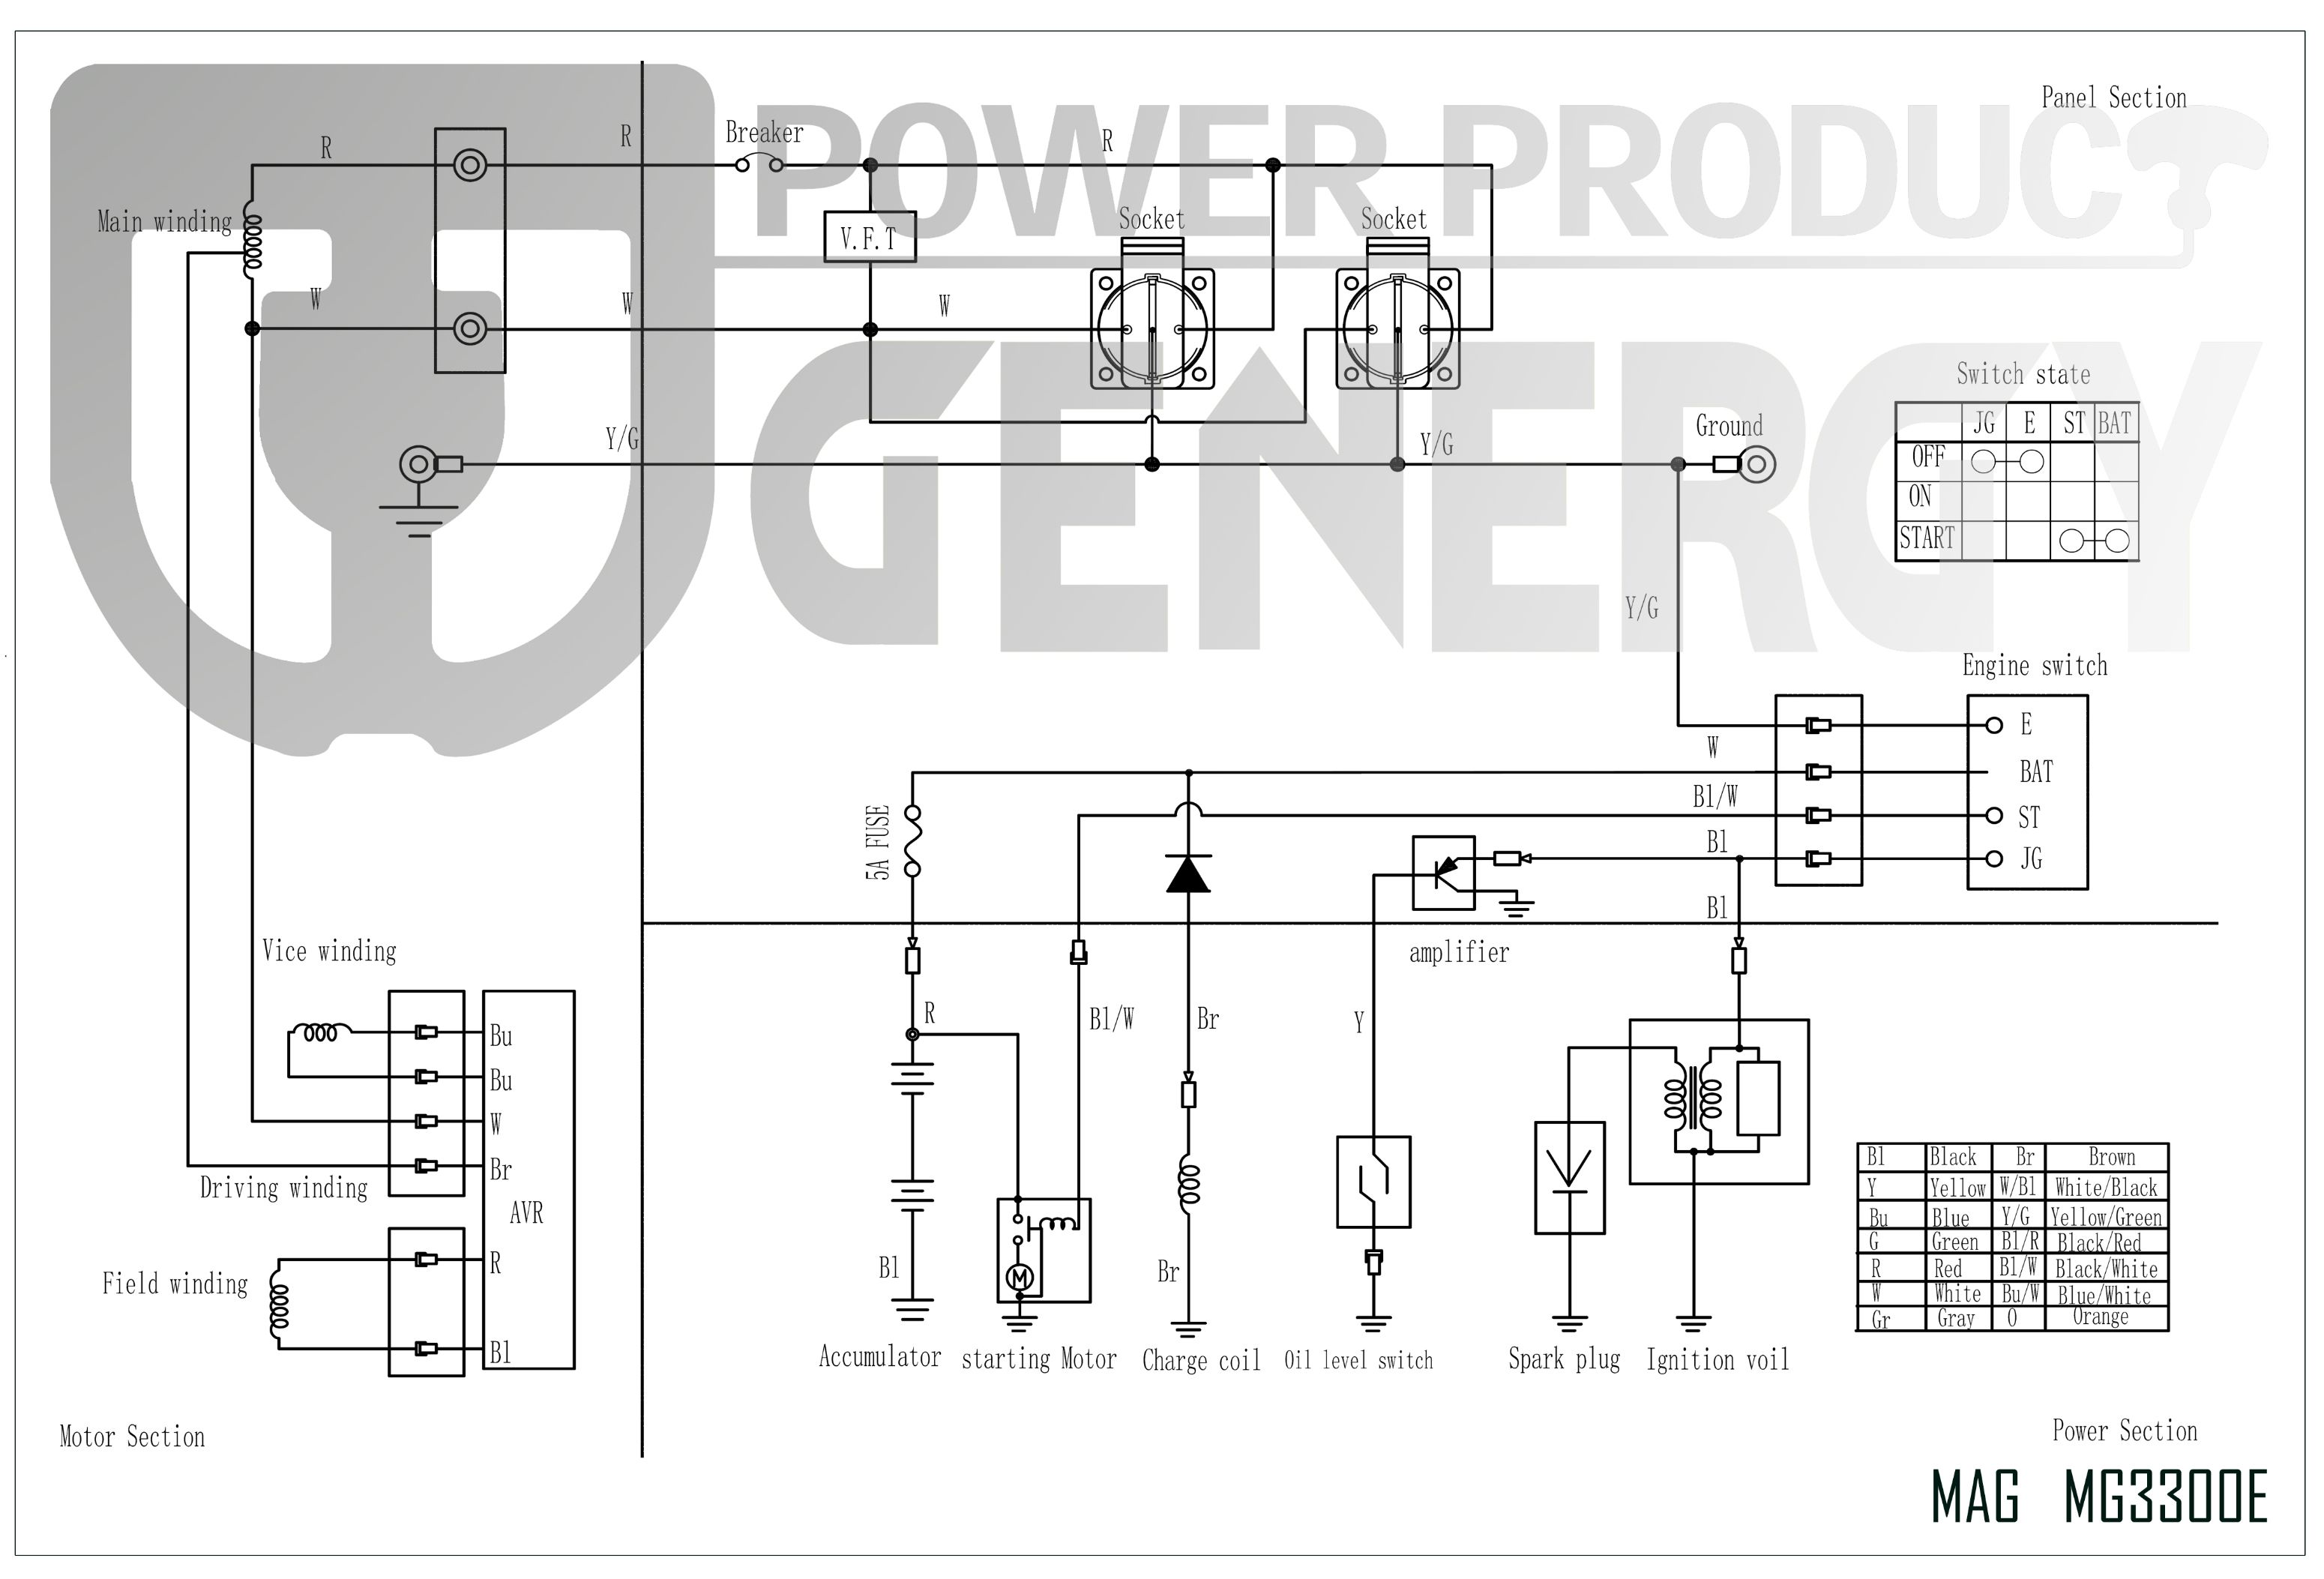 MG3300E Generator Diagram